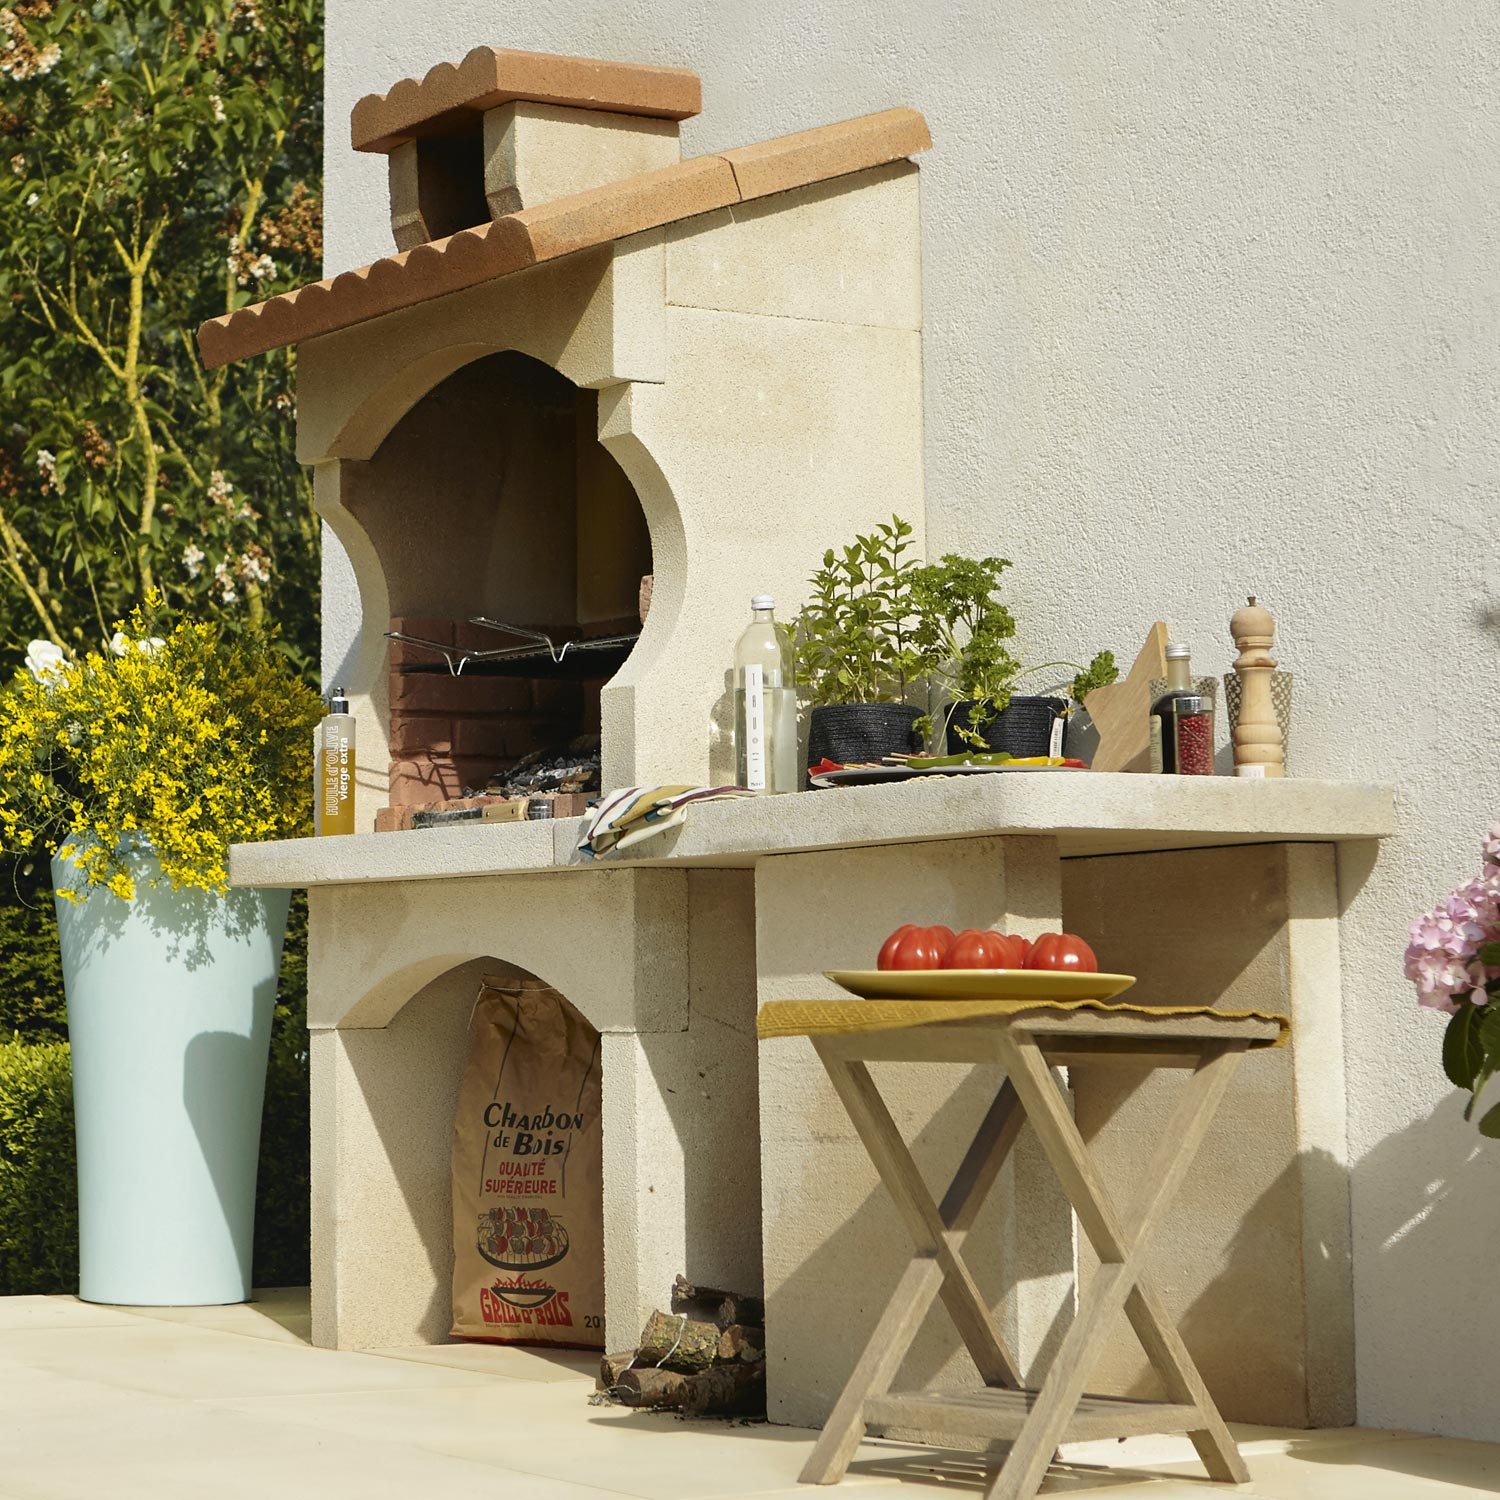 Barbecue en b ton blanc et orange cusco x x h - Beton decoratif leroy merlin ...